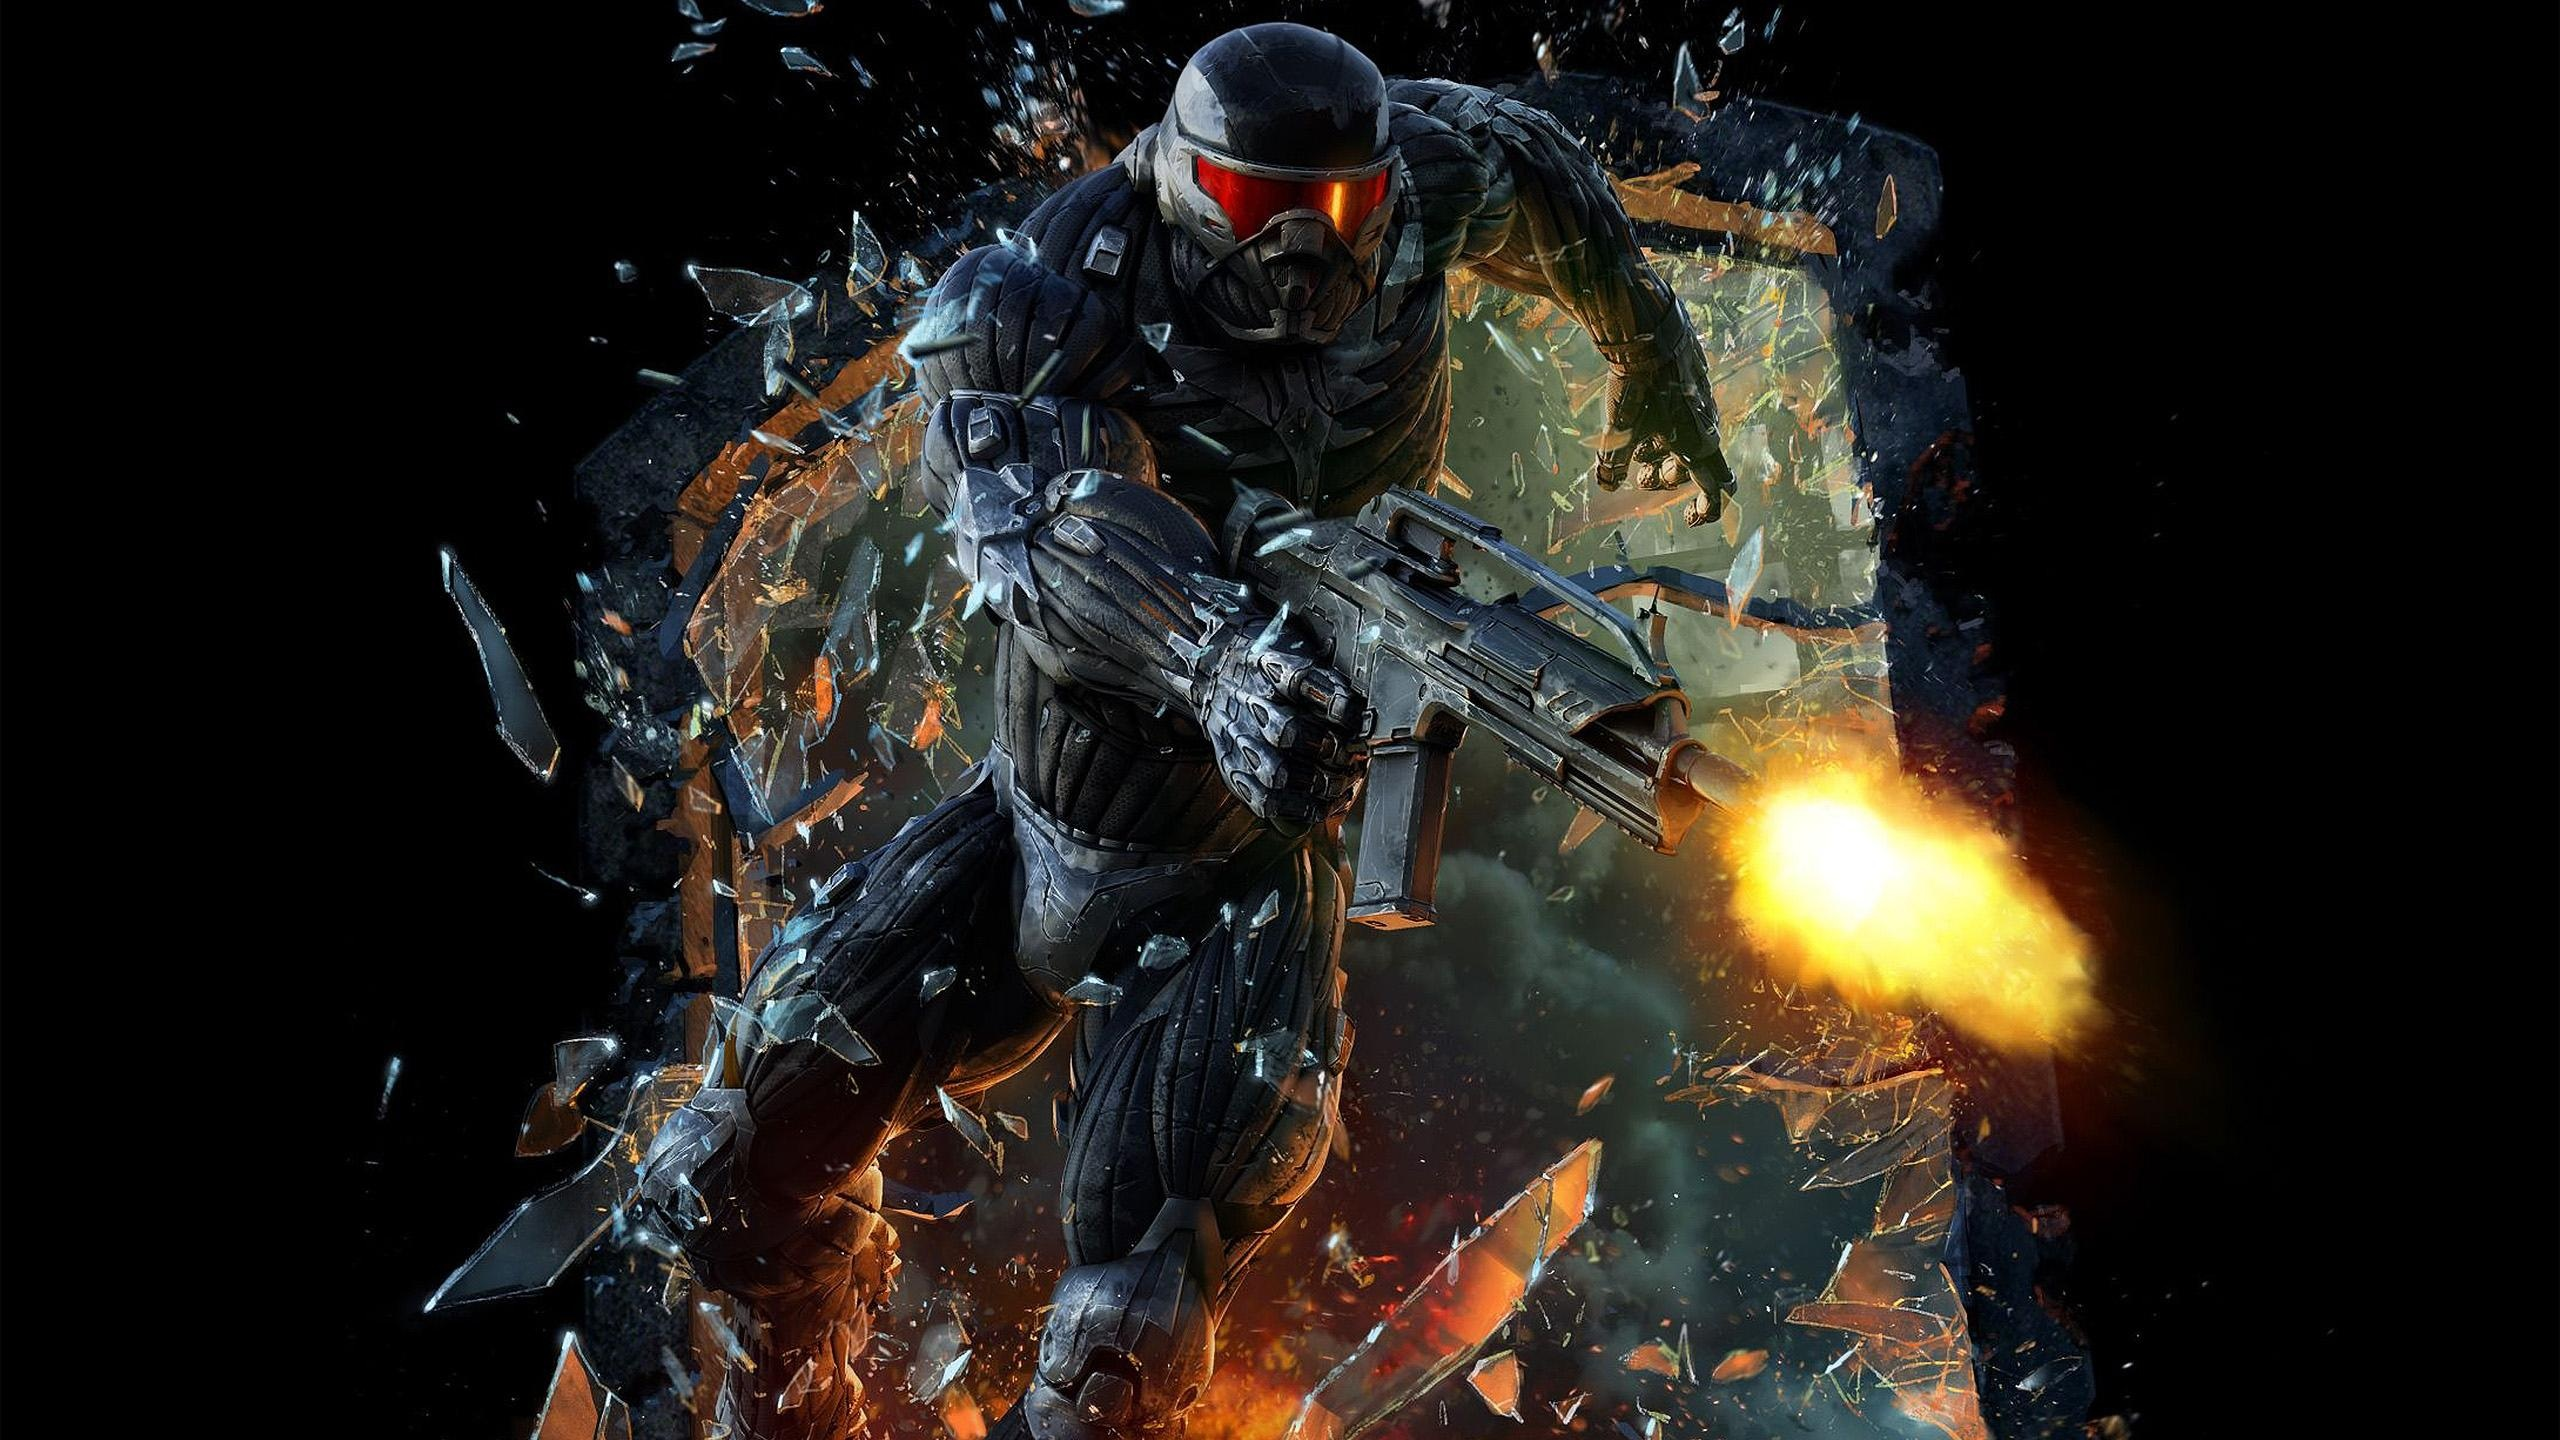 Mass Effect 3 Iphone Wallpaper Wallpaper Crysis 2 Hd 05 2560x1600 Hd Picture Image